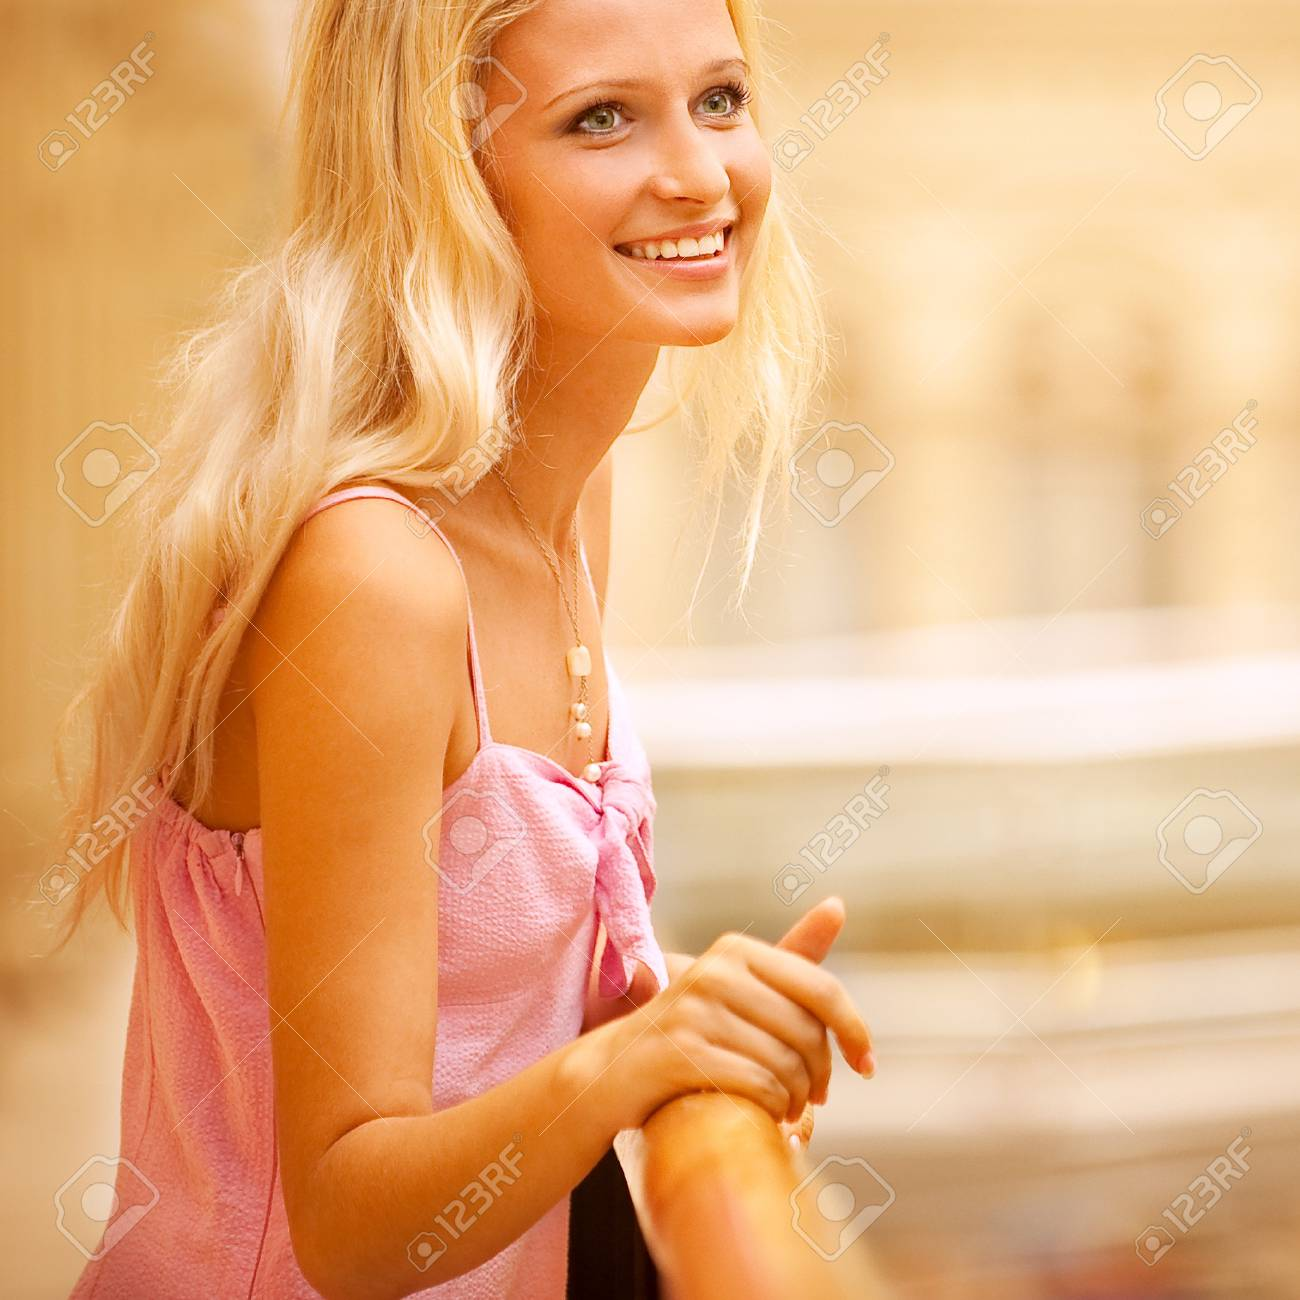 Beautiful girl leans against handrail in magnificent hall and laughs. Stock Photo - 8016494